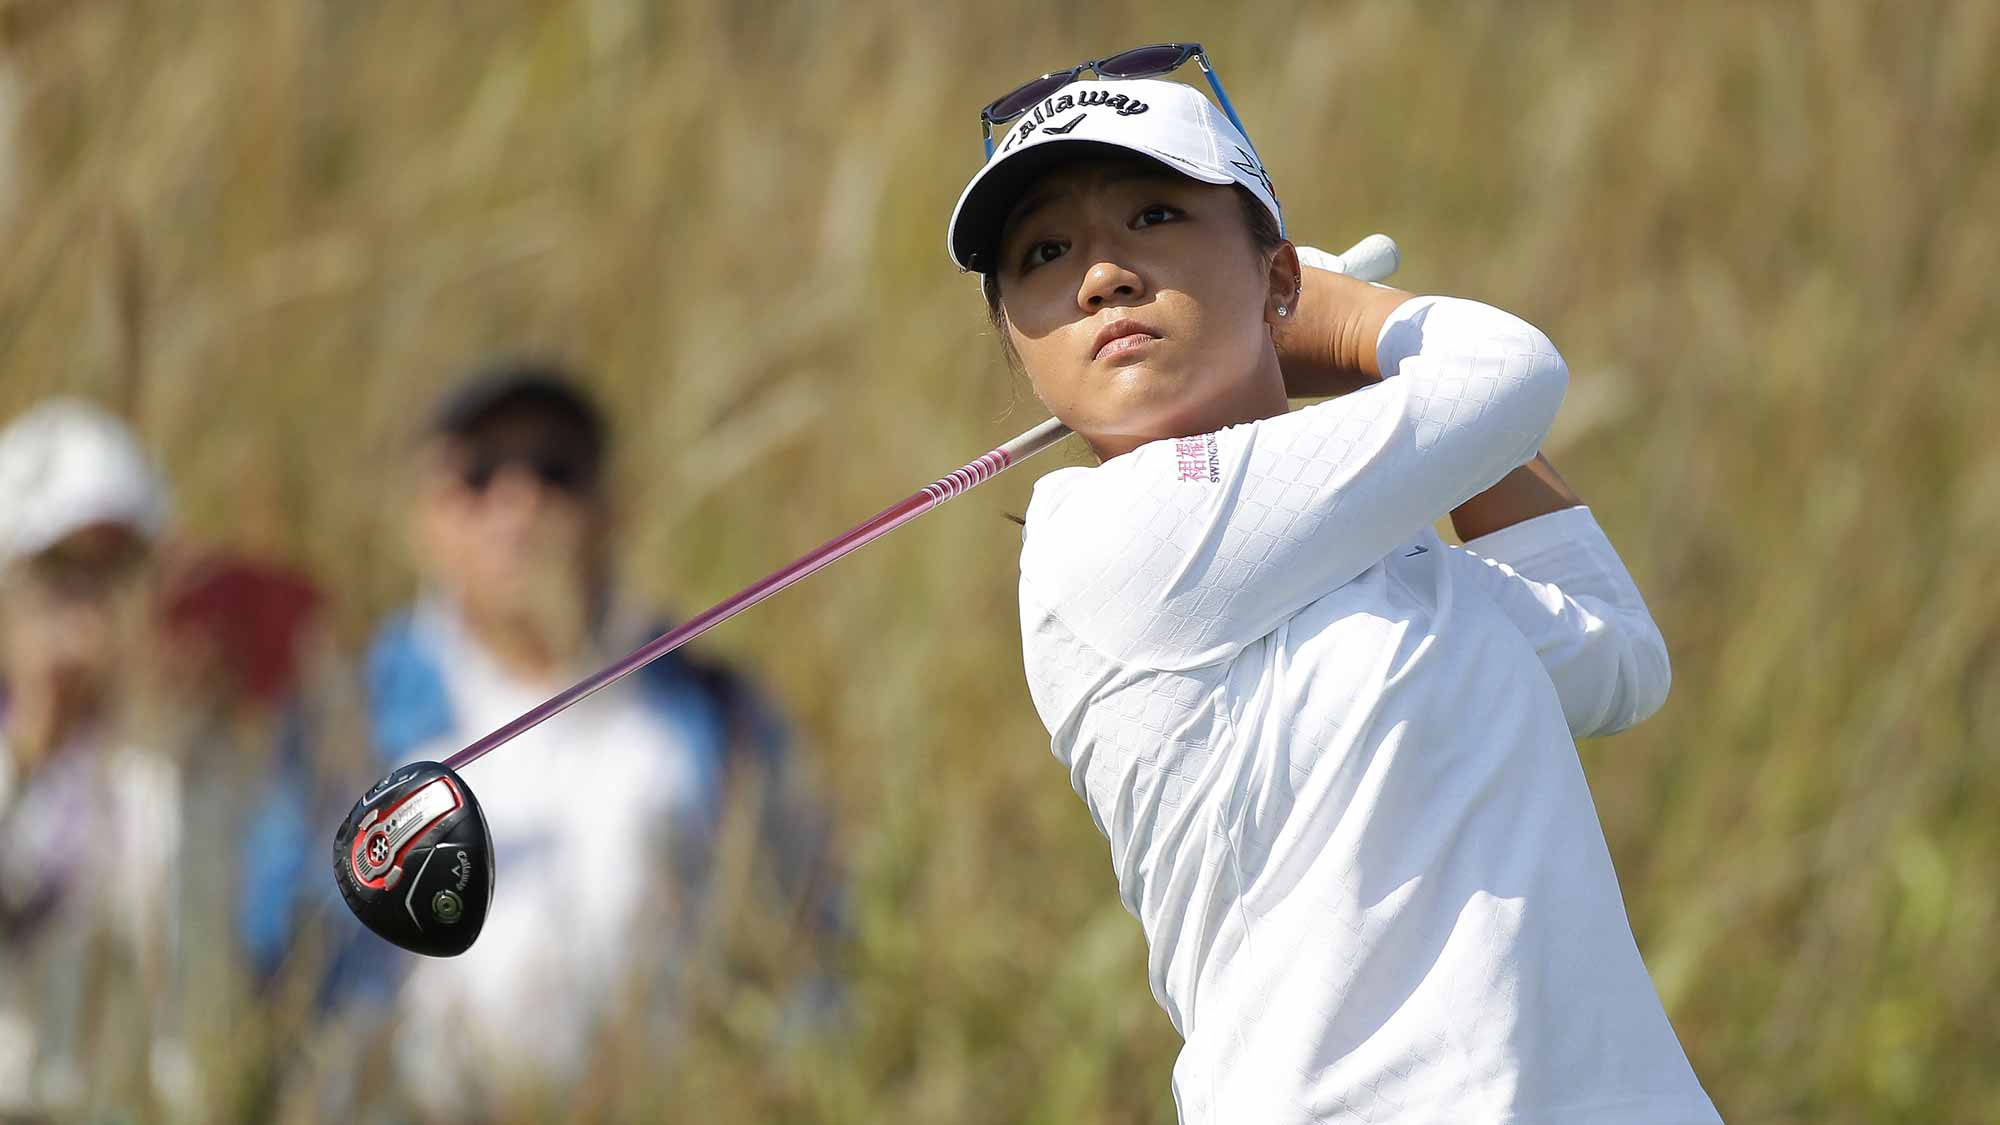 Lydia Ko of New Zealand plays a tee shot on the 9th hole during round three of the LPGA KEB Hana Bank